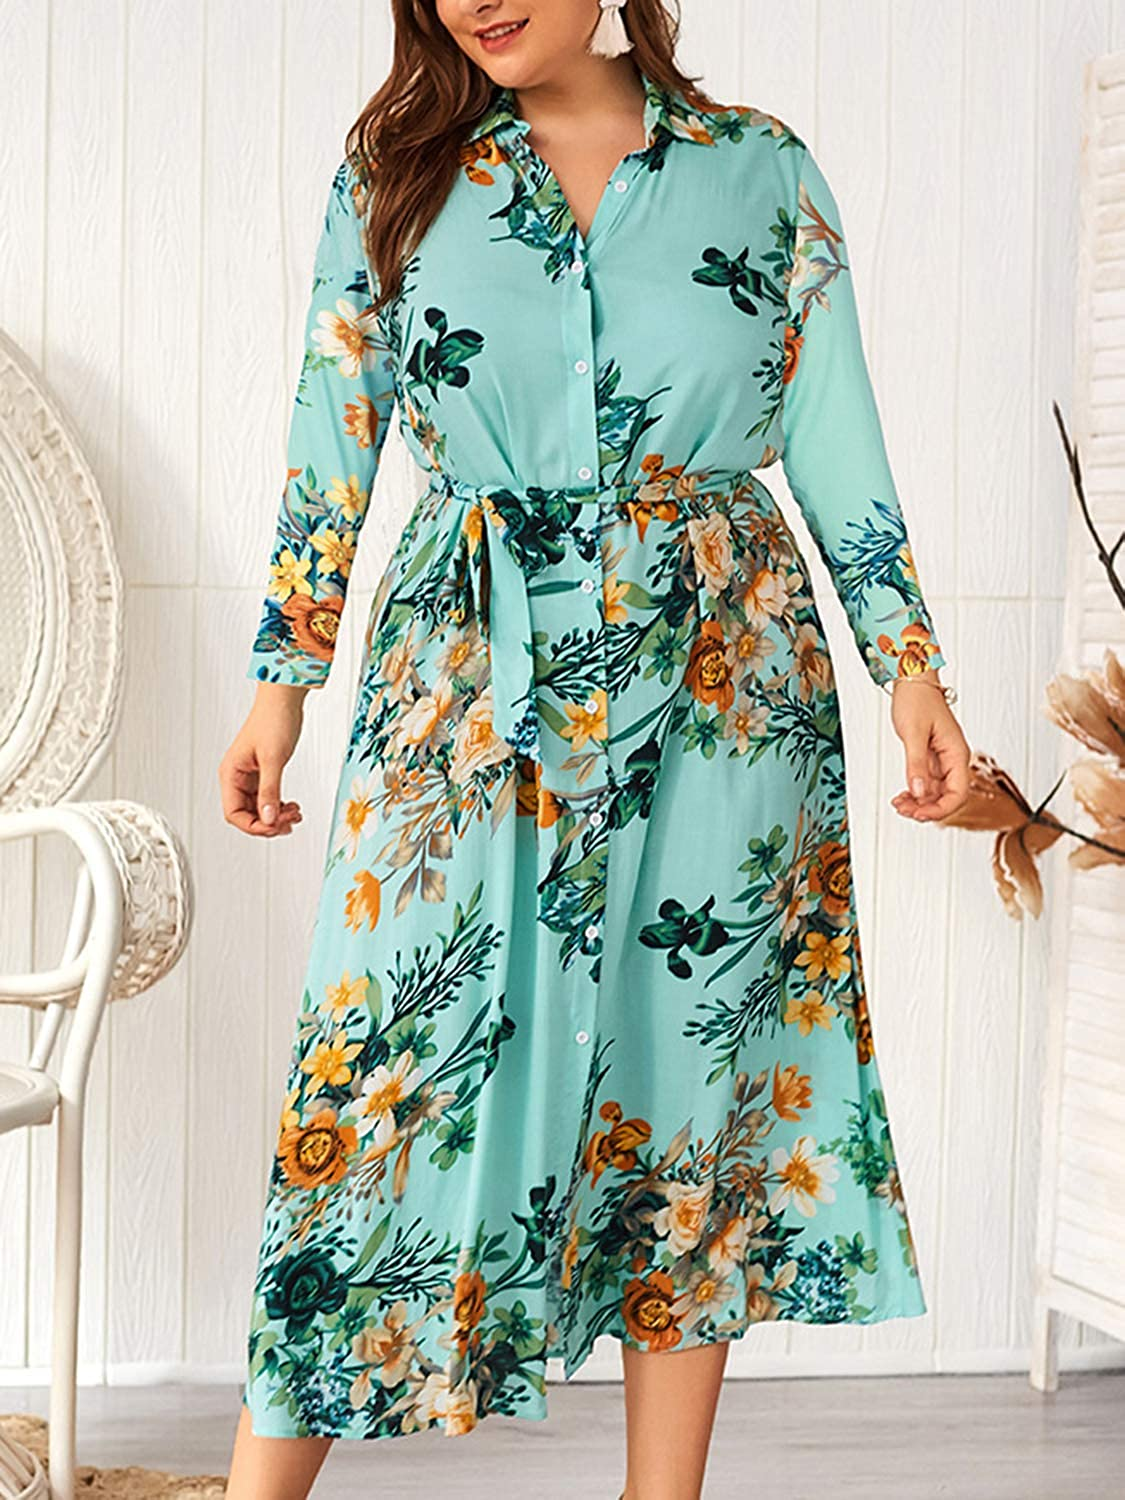 CHARLES RICHARDS Womens Plus Size Dresses Button up Long Sleeves Floral Maxi Dresses with Belt